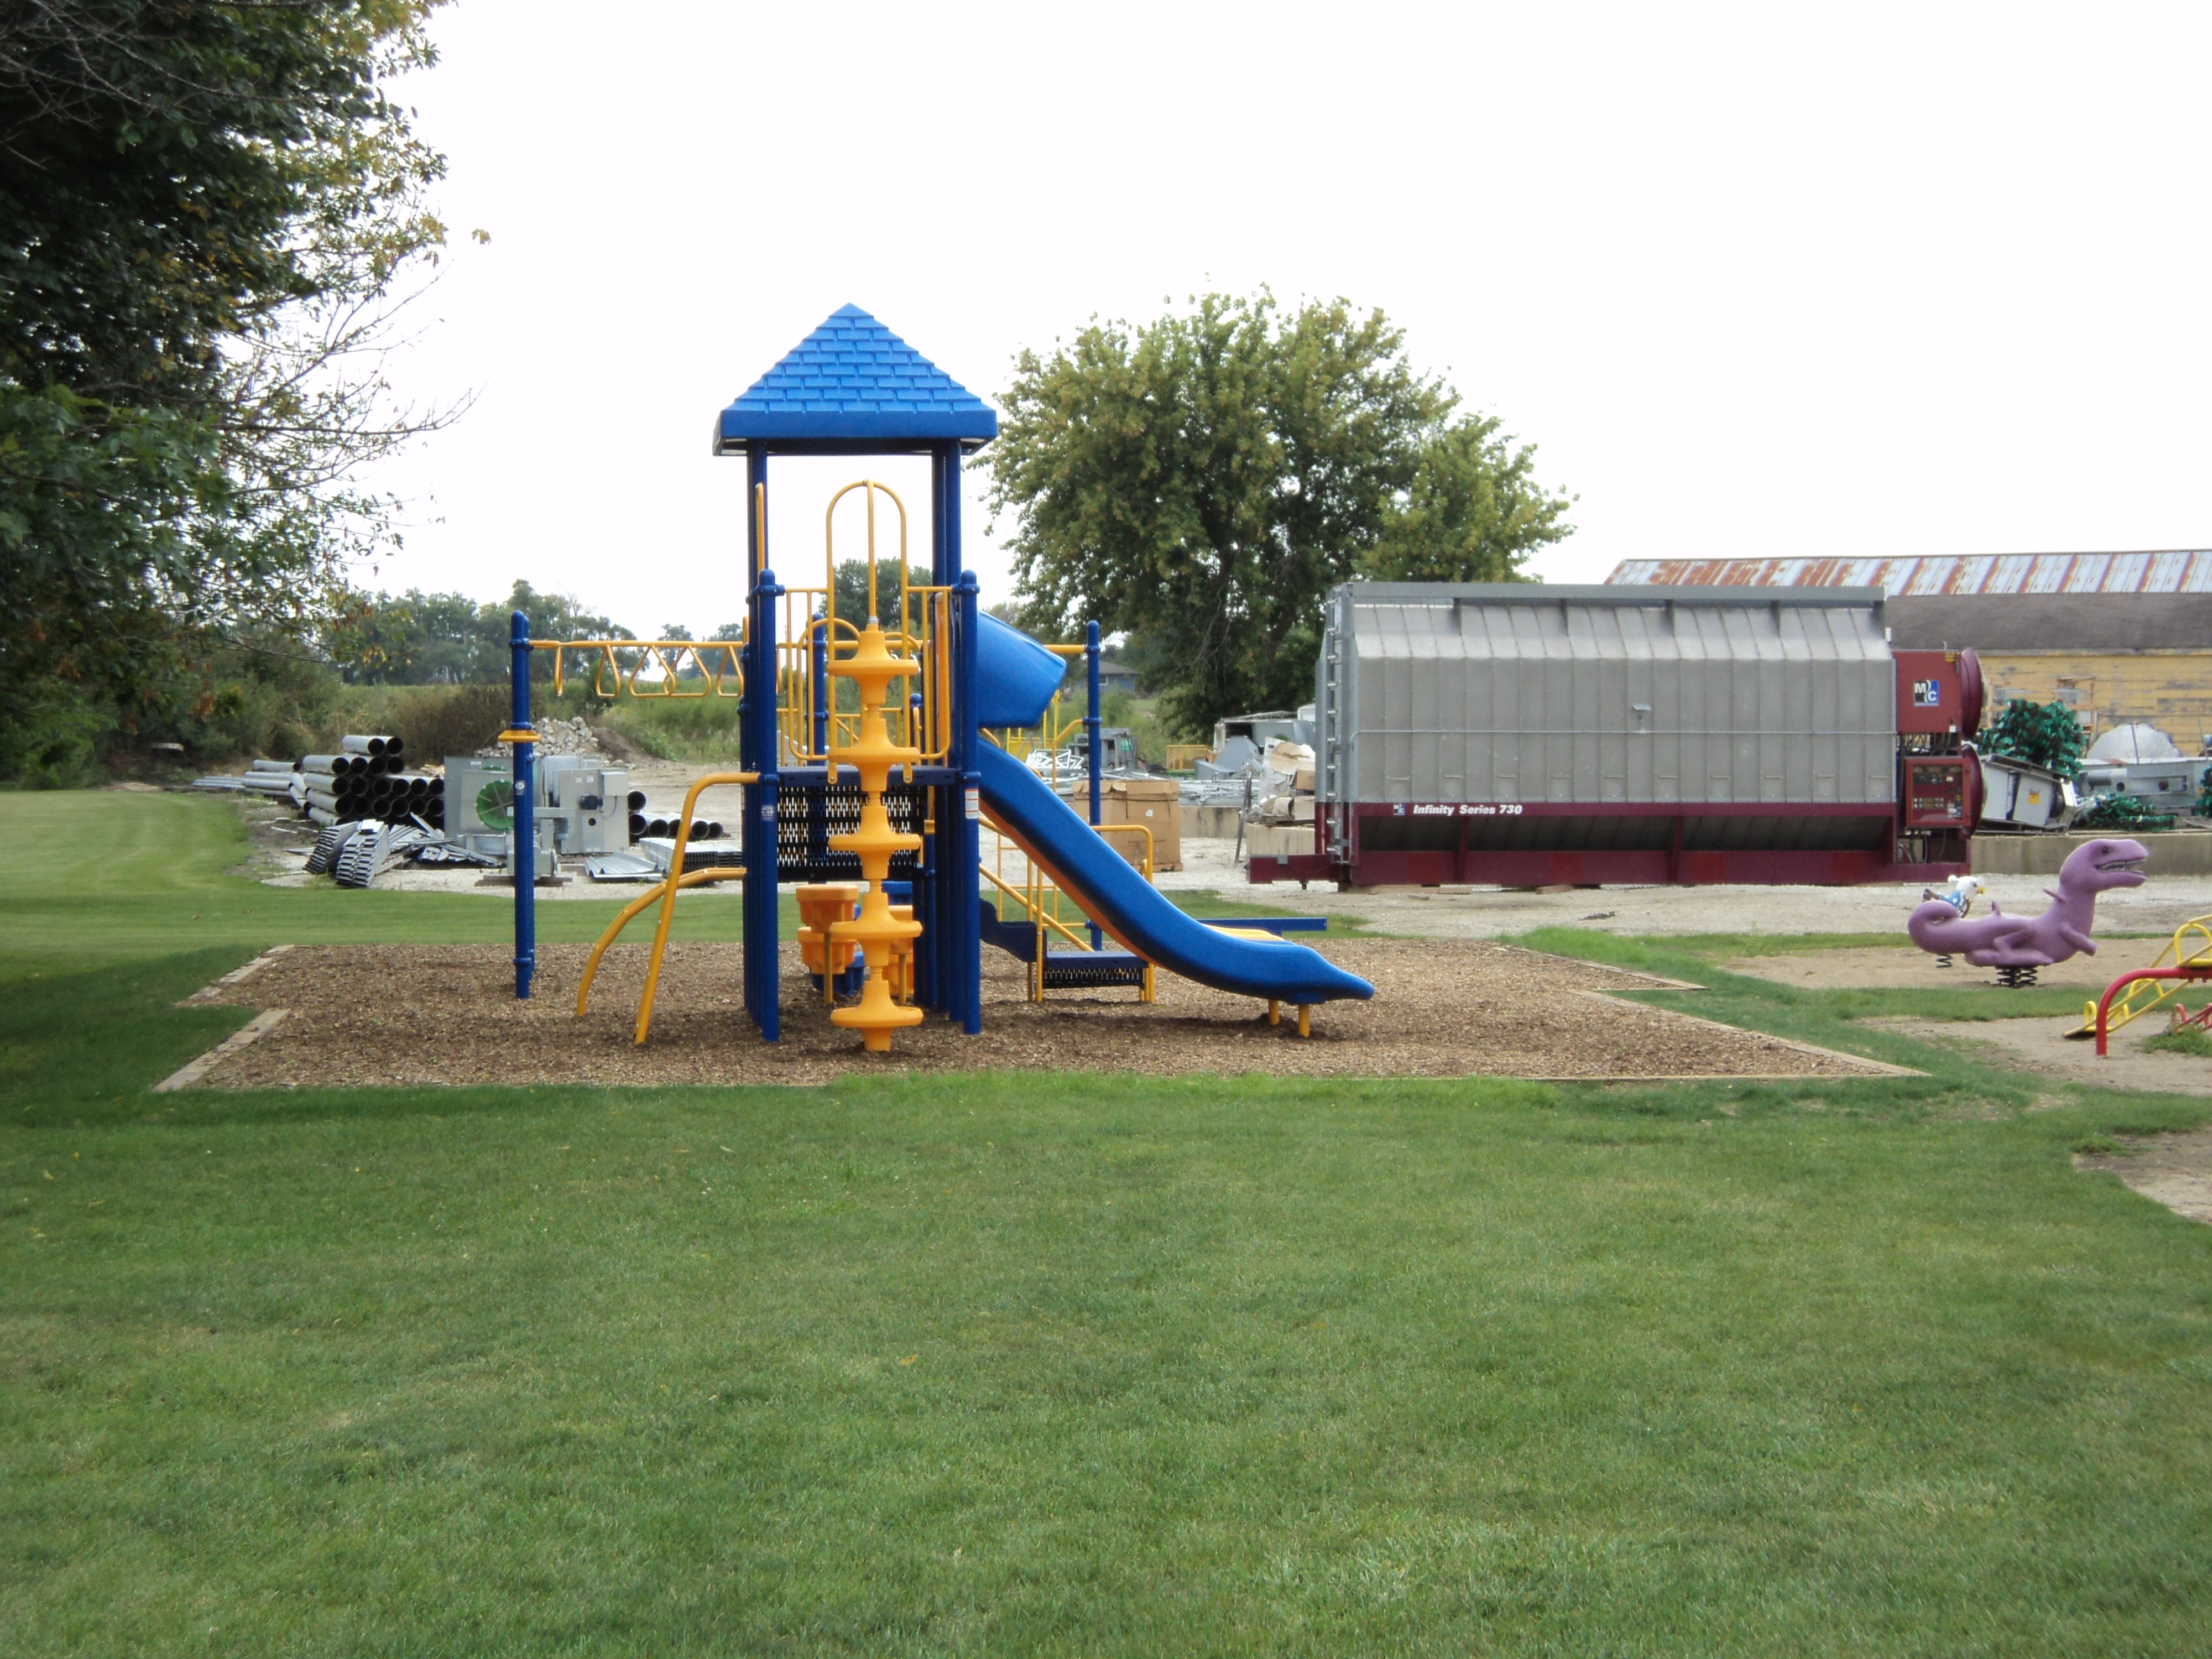 Ides illinois file my certification - Park And Pavilion Mcadams Park And Pavilion The Baseball Diamonds Located On The S E Corner Of Willow Street And County Line Road Gym And Kitchen